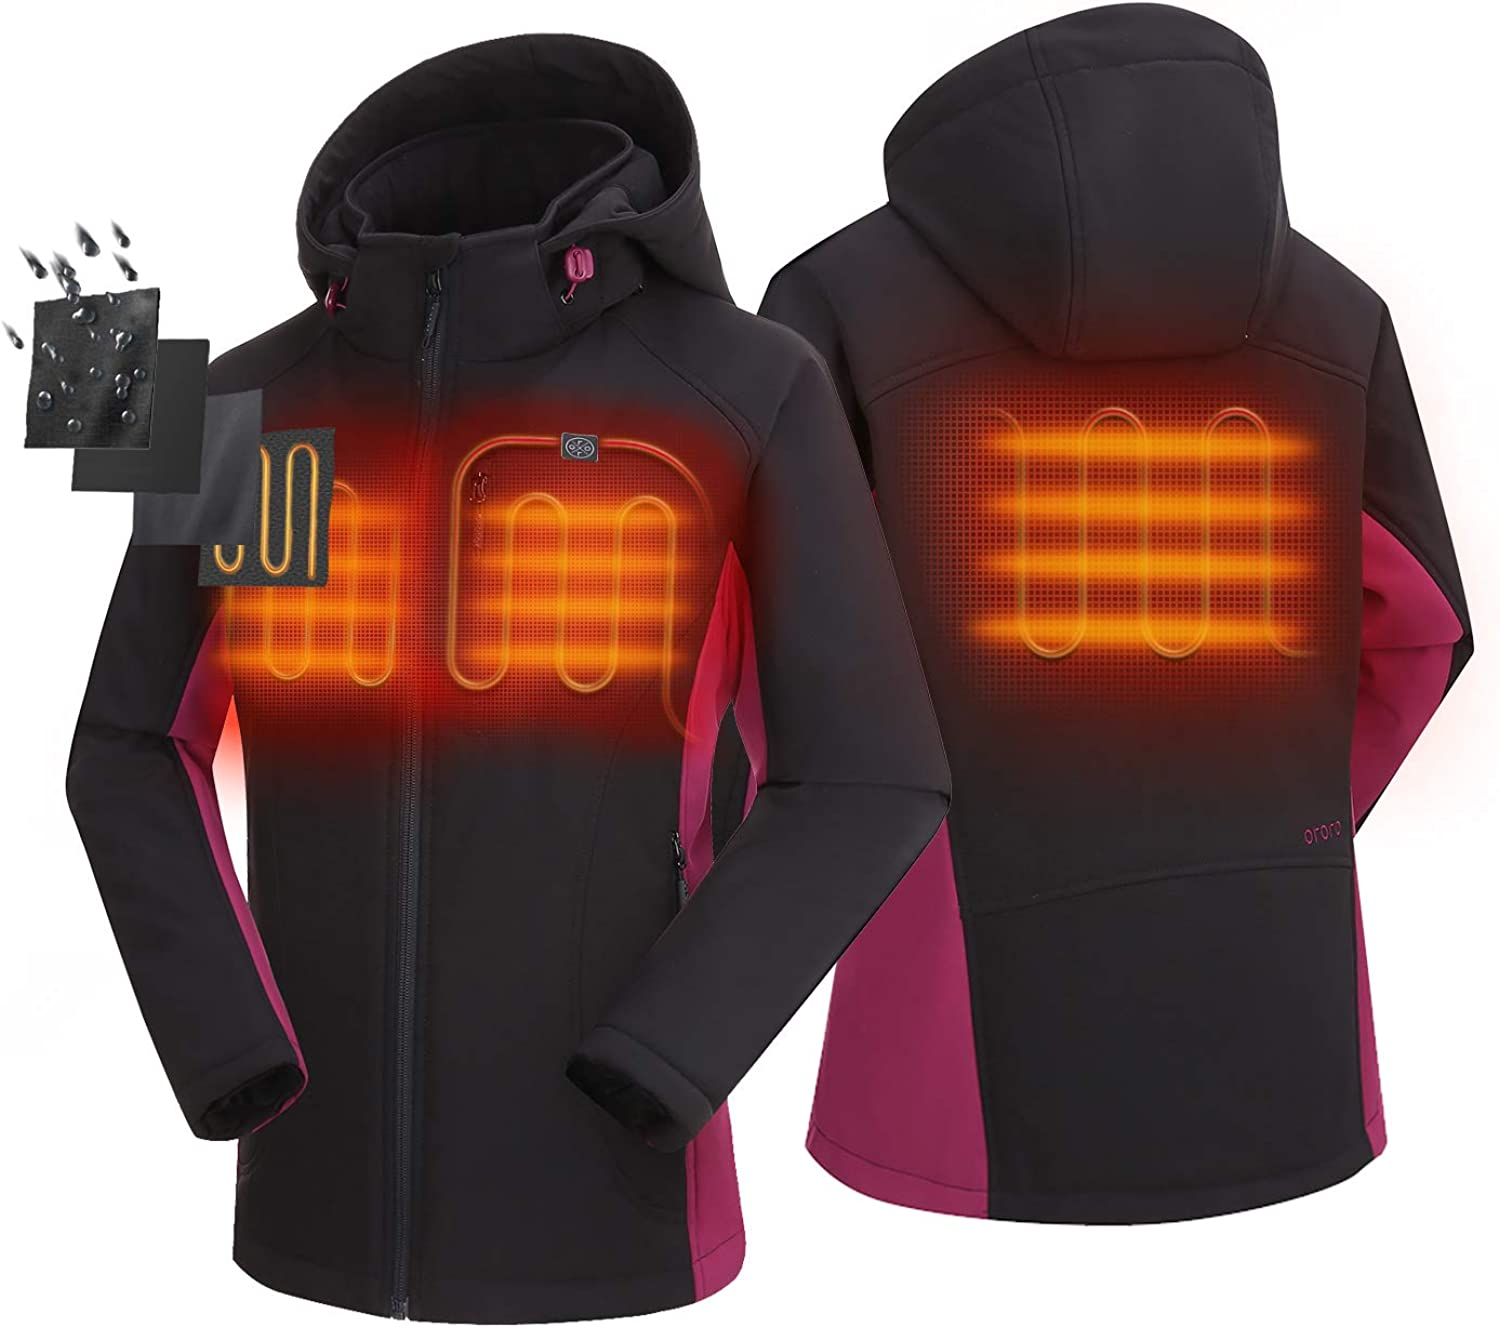 ORORO 2021 Women's Slim Fit Heated Jacket with Battery Pack and Detachable Hood: Clothing